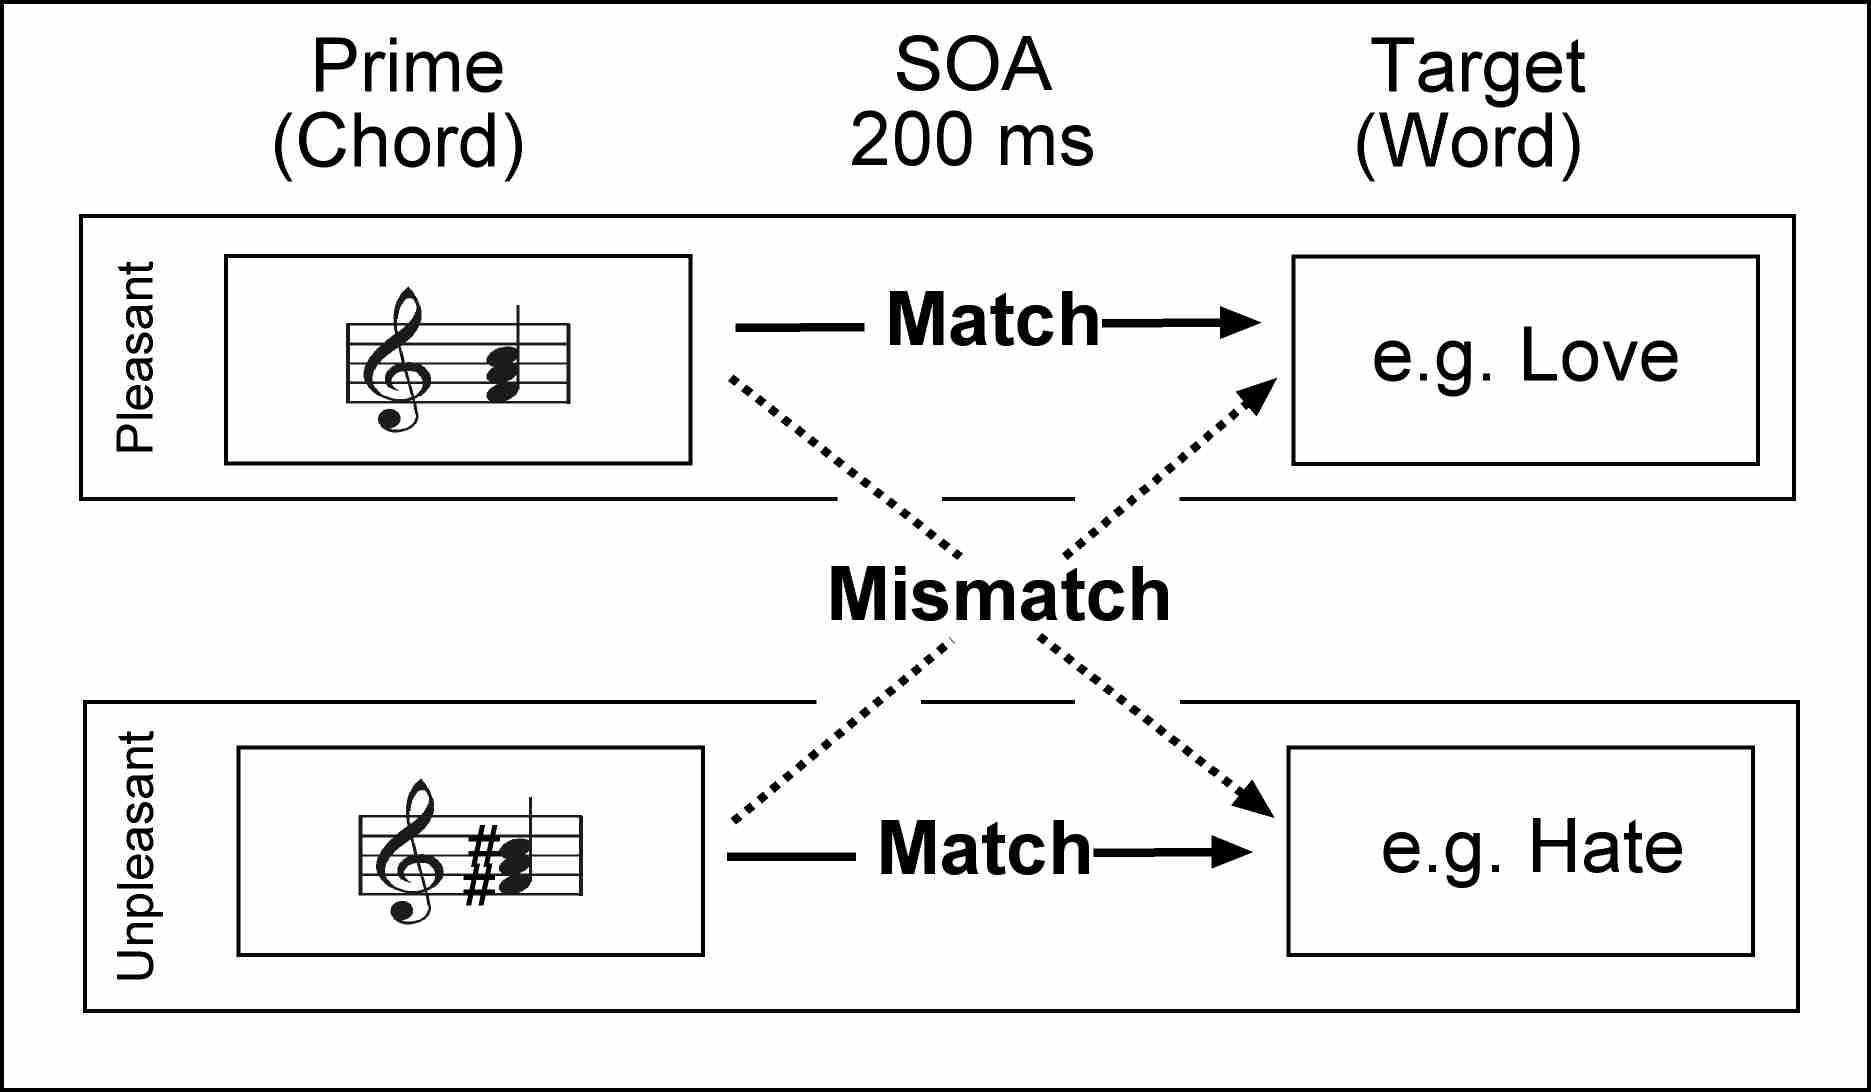 Indexml chords are used as primes and words as targets to test whether certain musical features are capable of conveying meaning information chords are varied hexwebz Choice Image